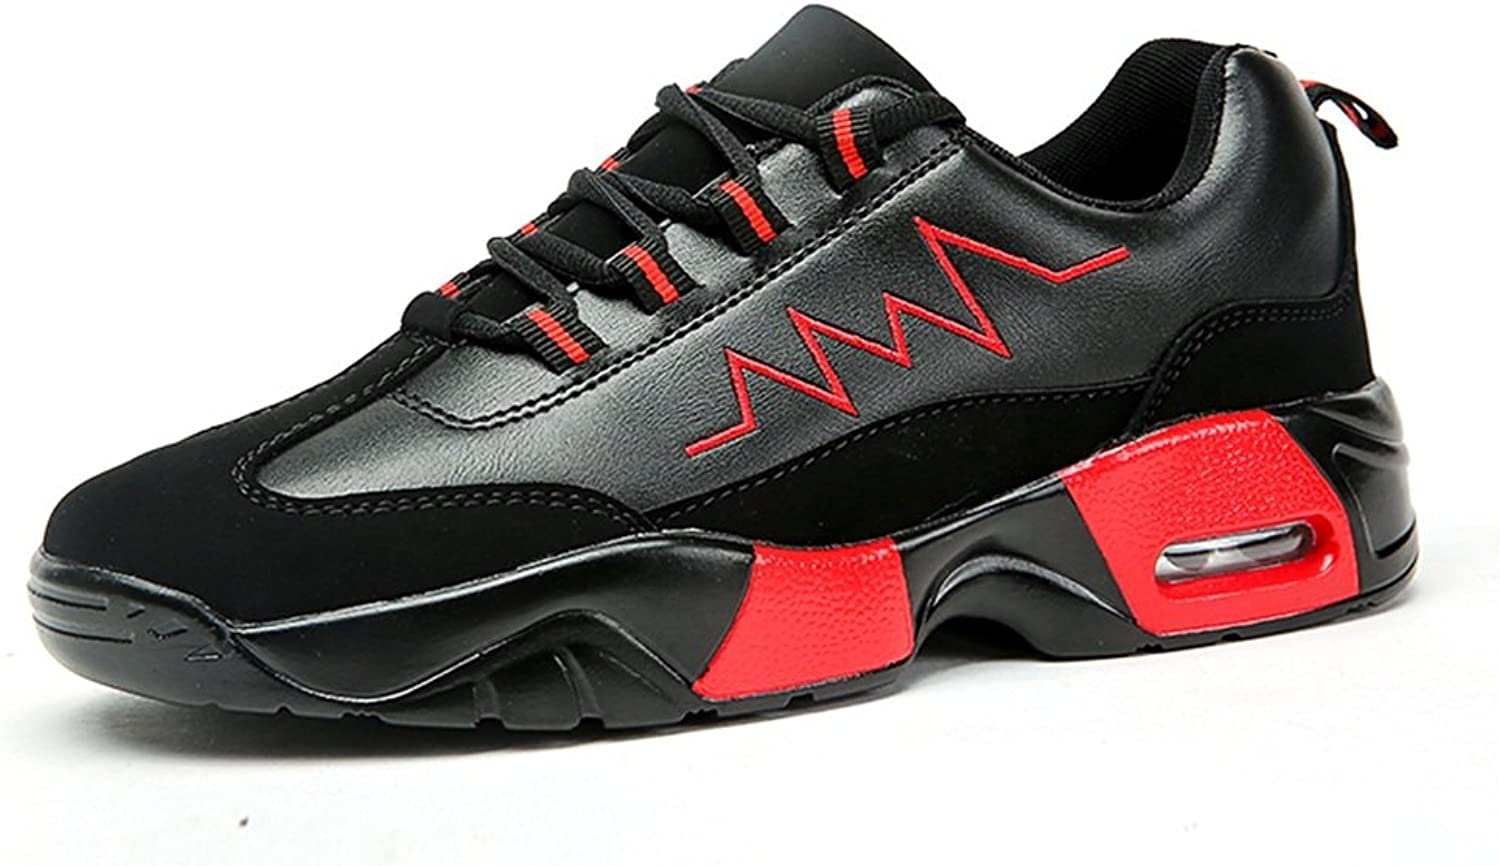 Lace-up Sneakers Women and Men's Unisex fashion casual comfort breathable Outdoor Flat Heel Sneaker Lace up Athletic Casual shoes Up to Size 47 Casual Sneakers (color   Black Red, Size   10 UK)